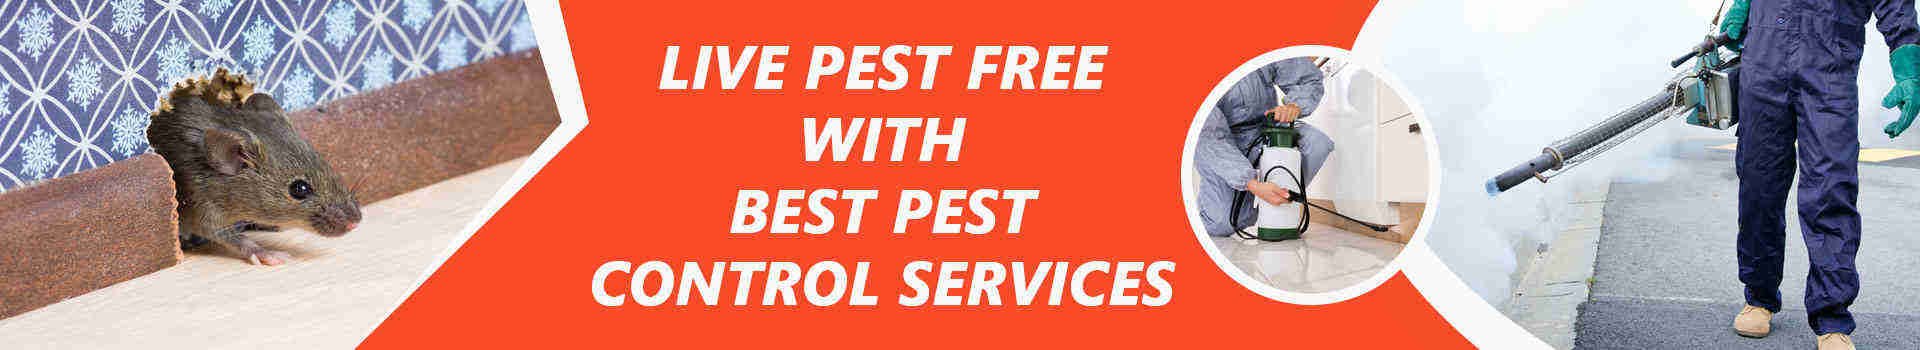 Pest Control Services Brisbane